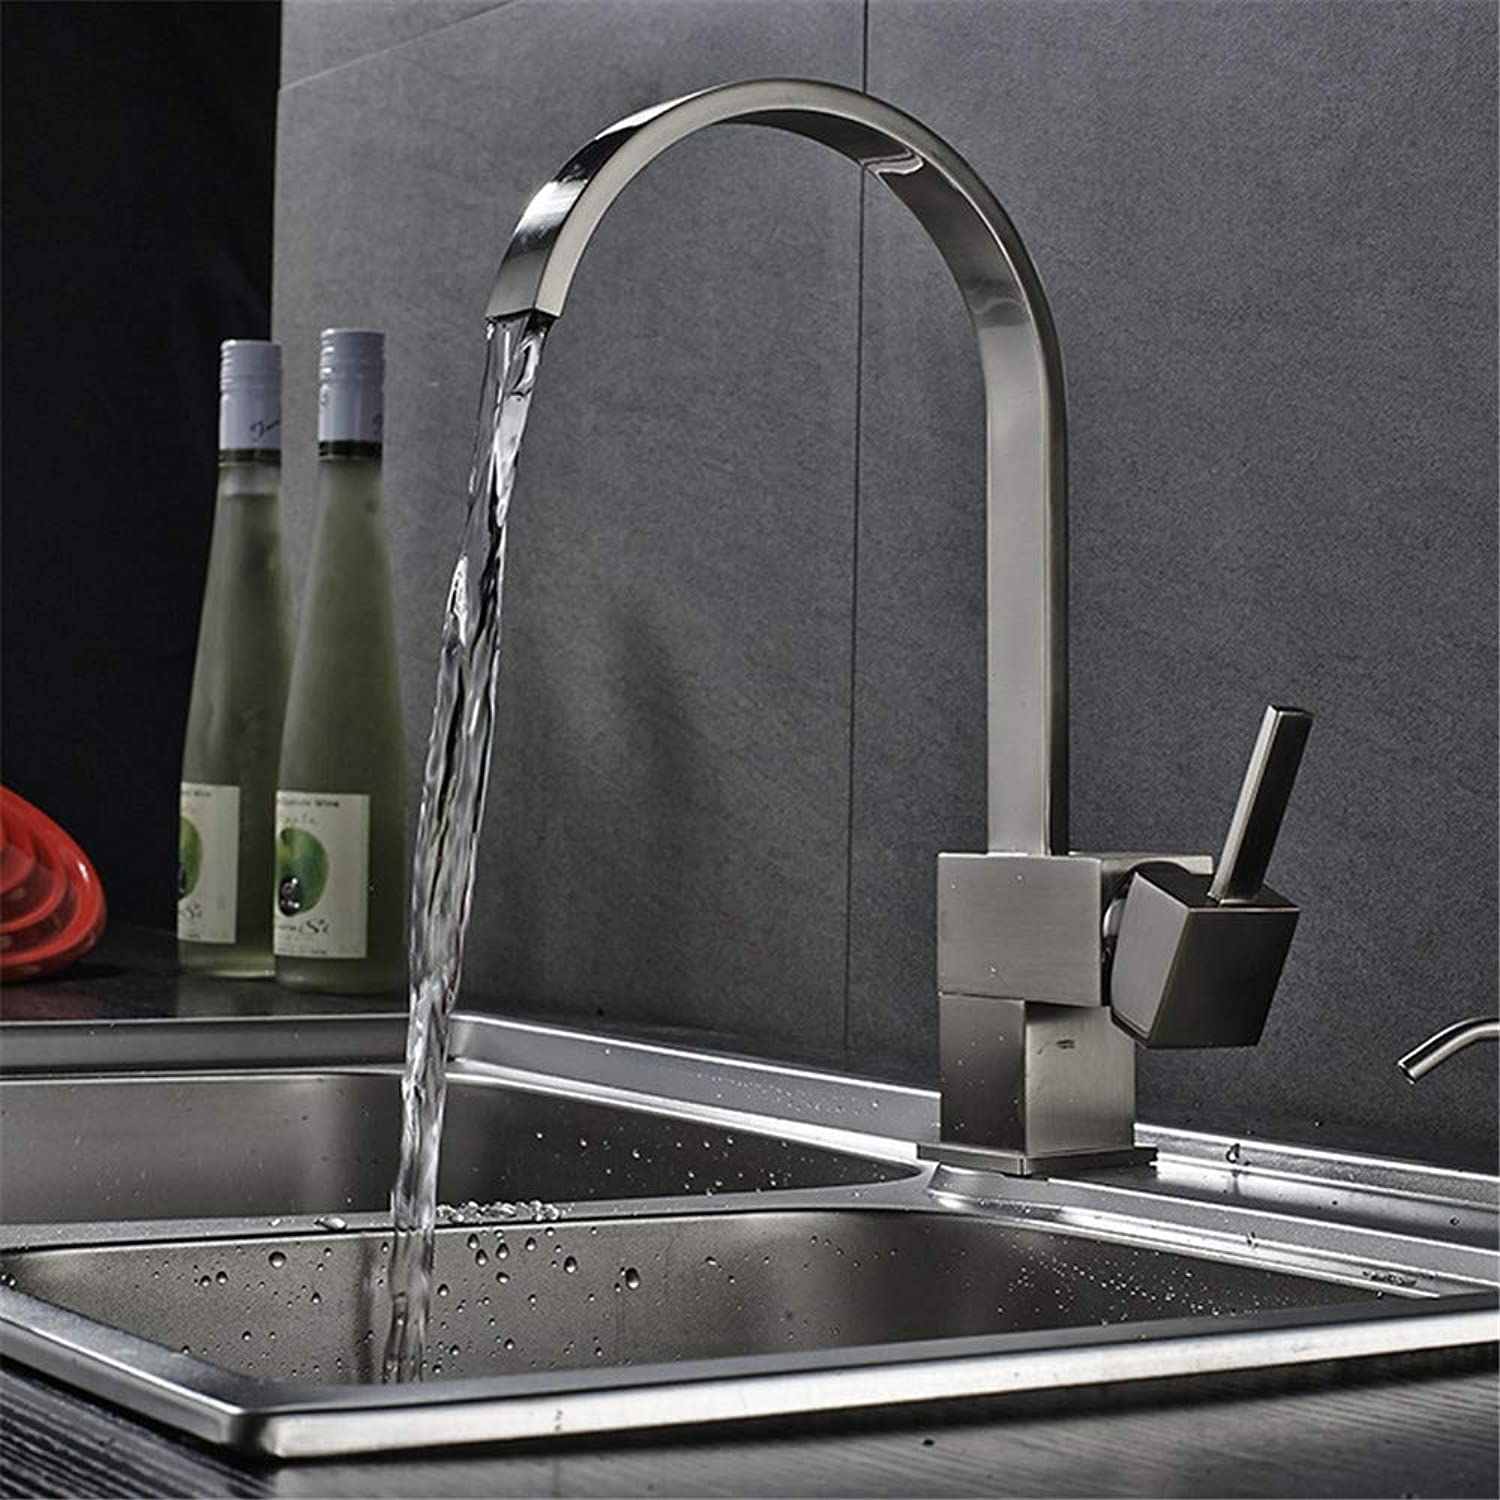 Grünical Kitchen Faucet, Single Hole Kitchen Sink, Water Faucet, Cold Water Mixer, Square Single Handle Can Be Rotated.